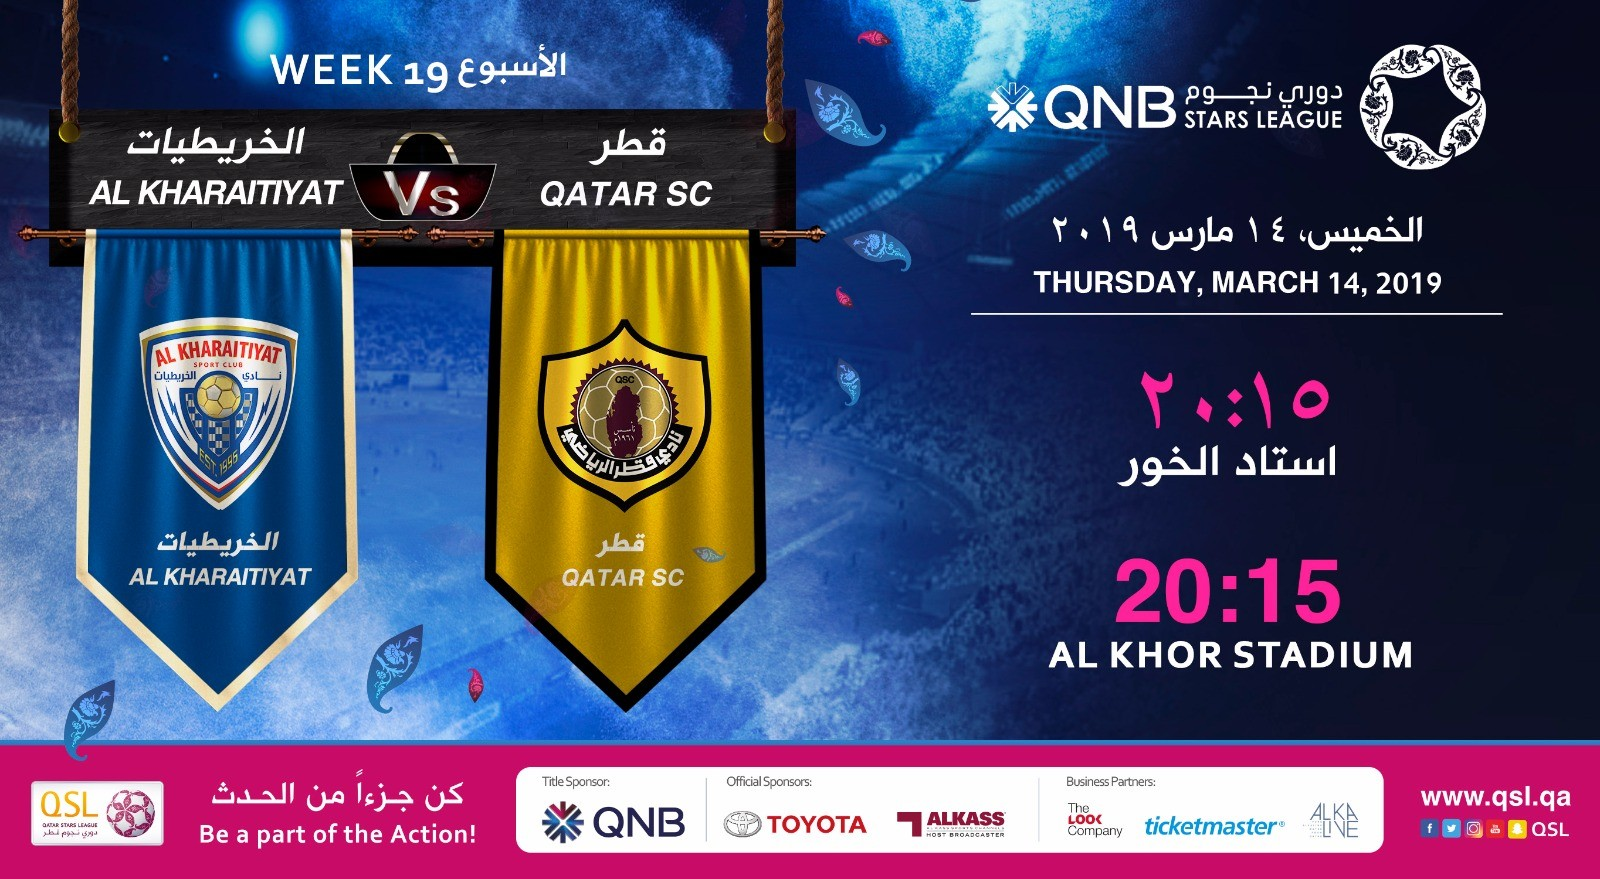 QNB Stars League Week 19 — Al Kharaitiyat vs Qatar SC